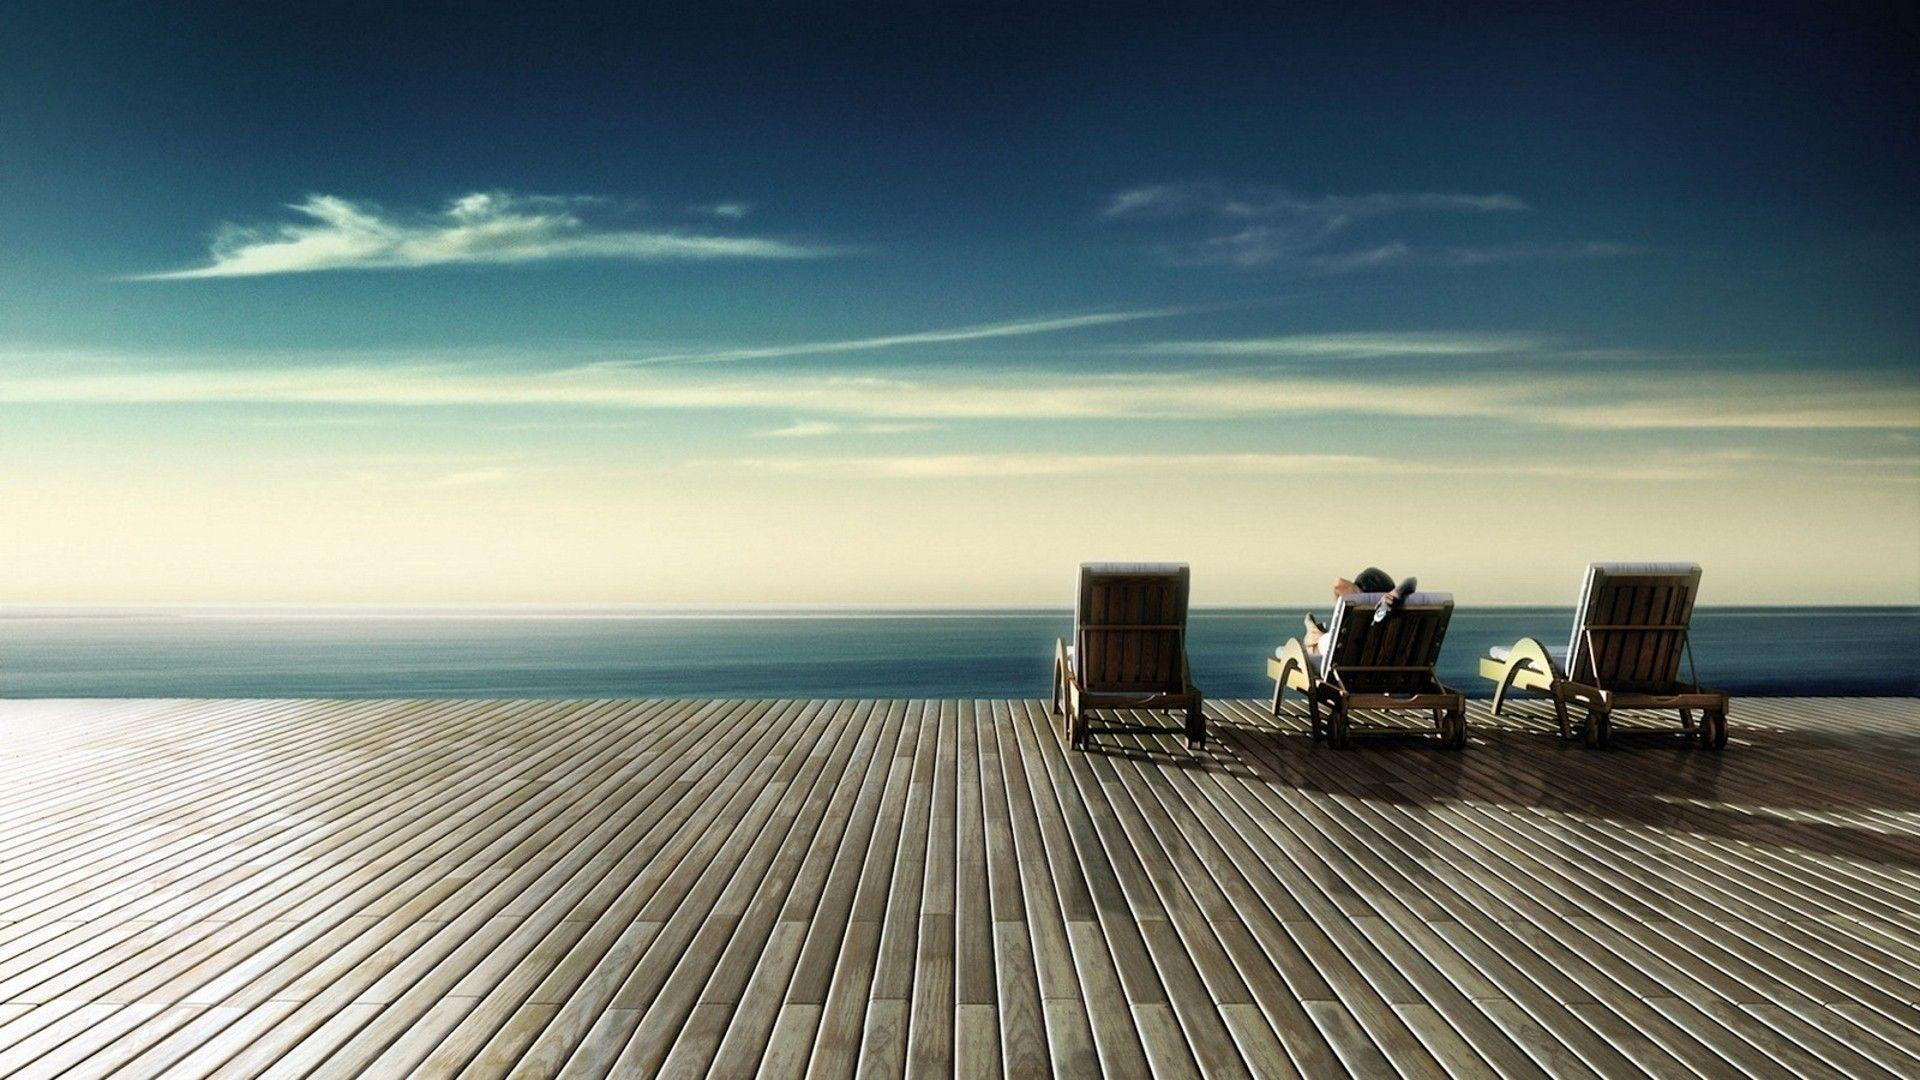 Relax Wallpapers | HD Wallpapers